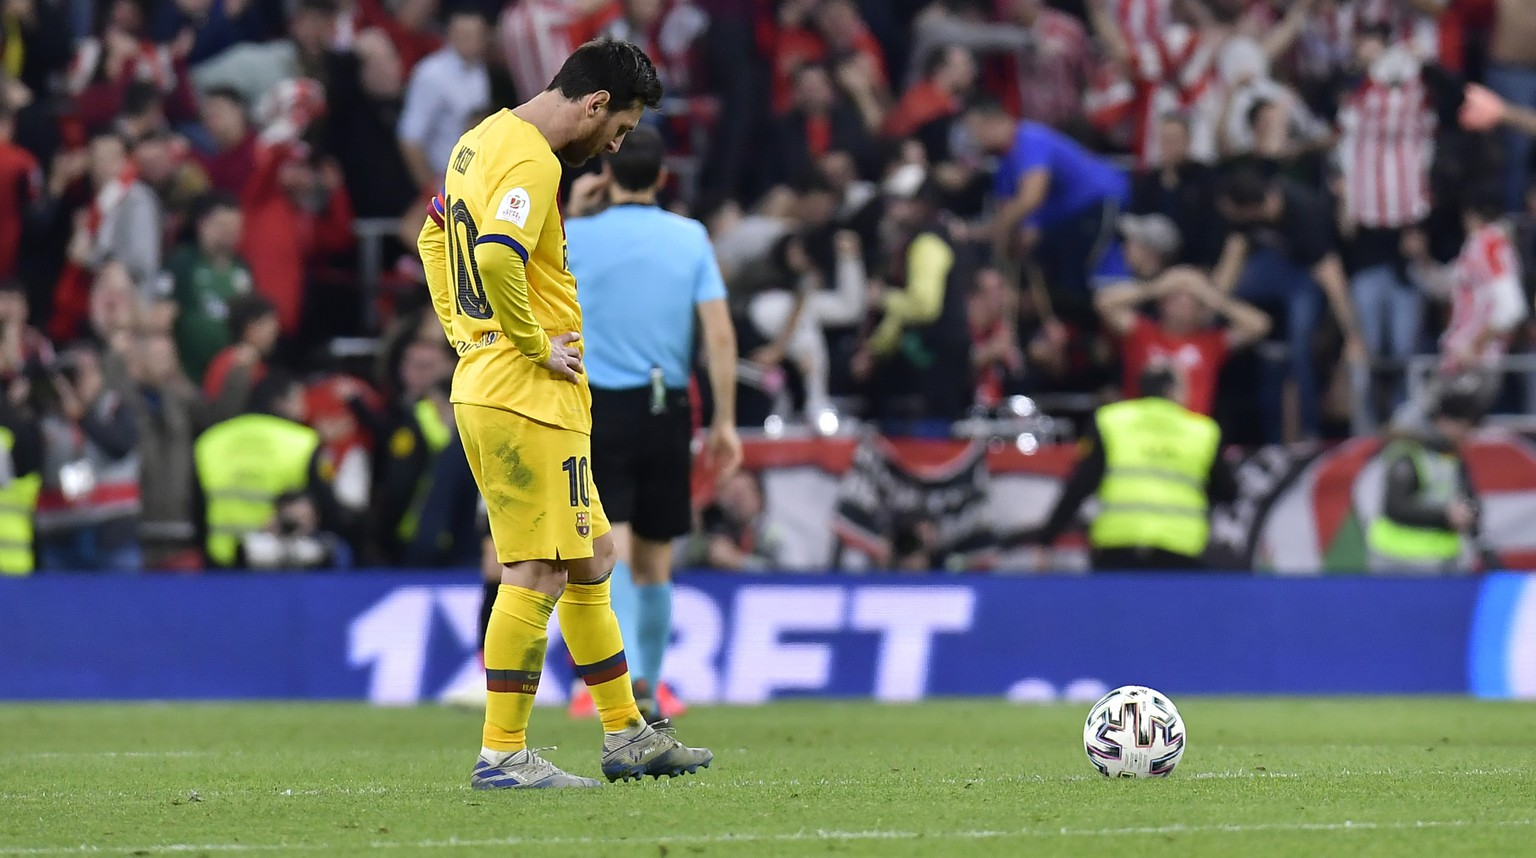 Barcelona's Lionel Messi stands in dejection at the end of the Spanish Copa del Rey, quarter final, soccer match between Athletic Bilbao and Barcelona at San Mames stadium in Bilbao, Spain, Thursday, Feb. 6, 2020. Athletic Bilbao won 1-0. (AP Photo/Alvaro Barrientos)